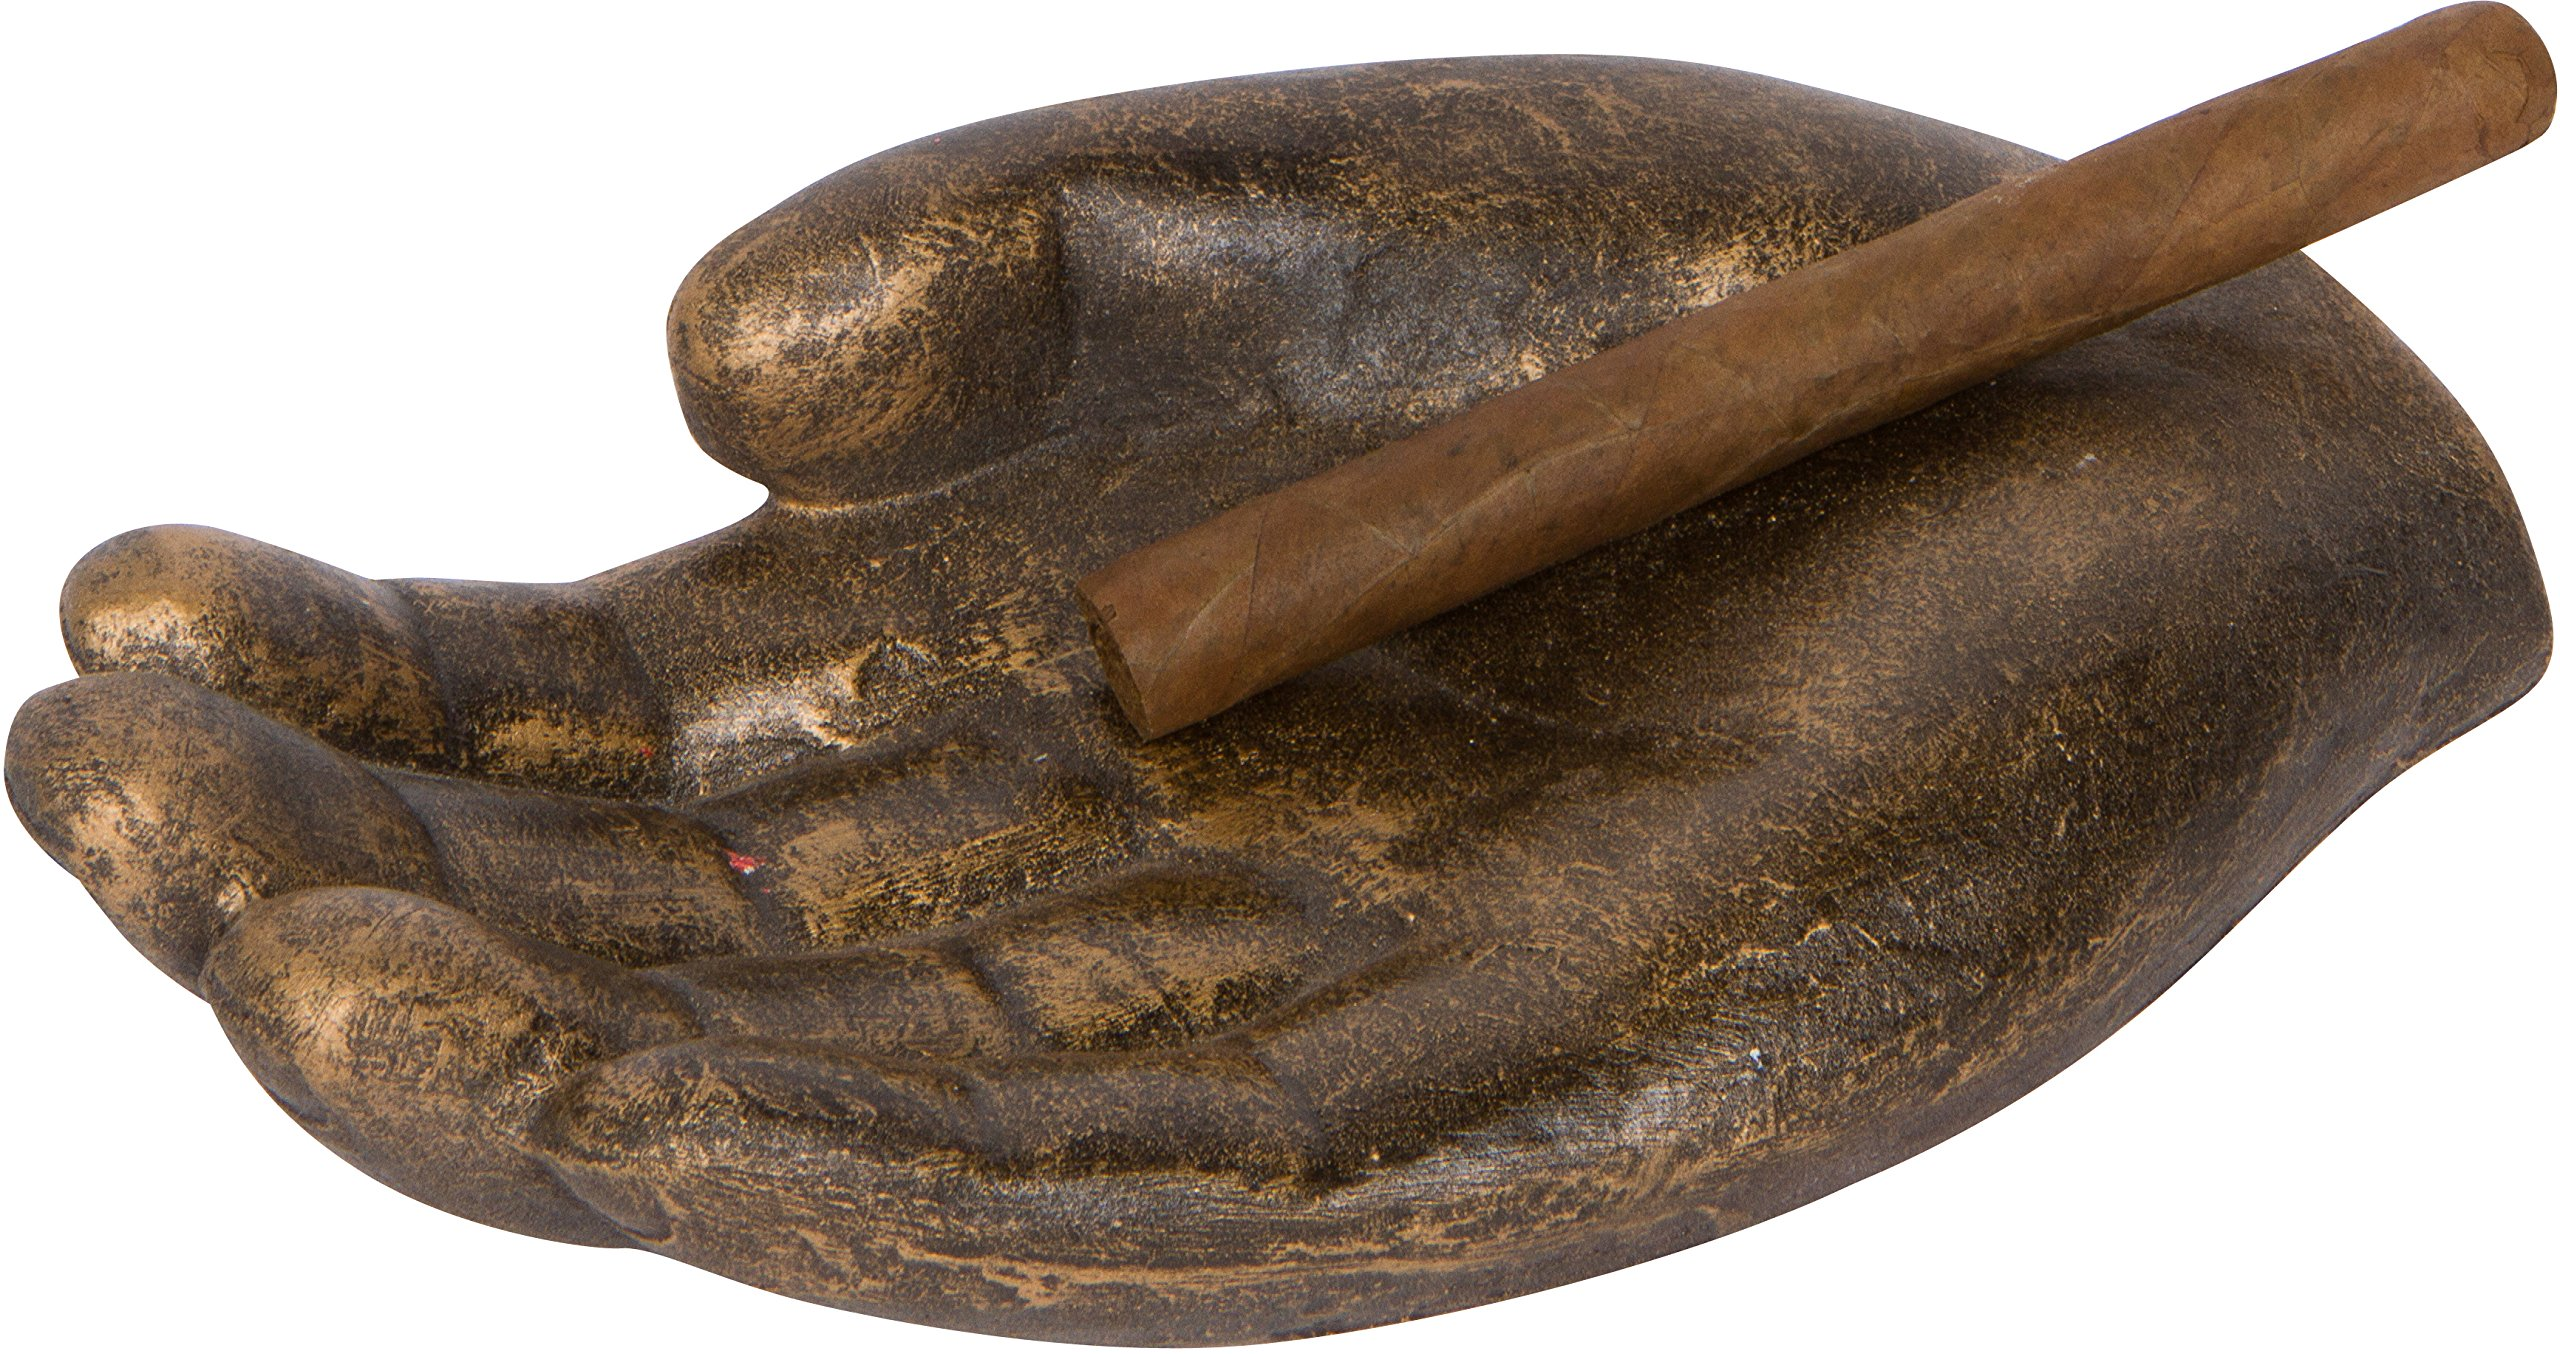 10'' Hand Shaped Cigar Holder and Ashtray By EZ Drinker